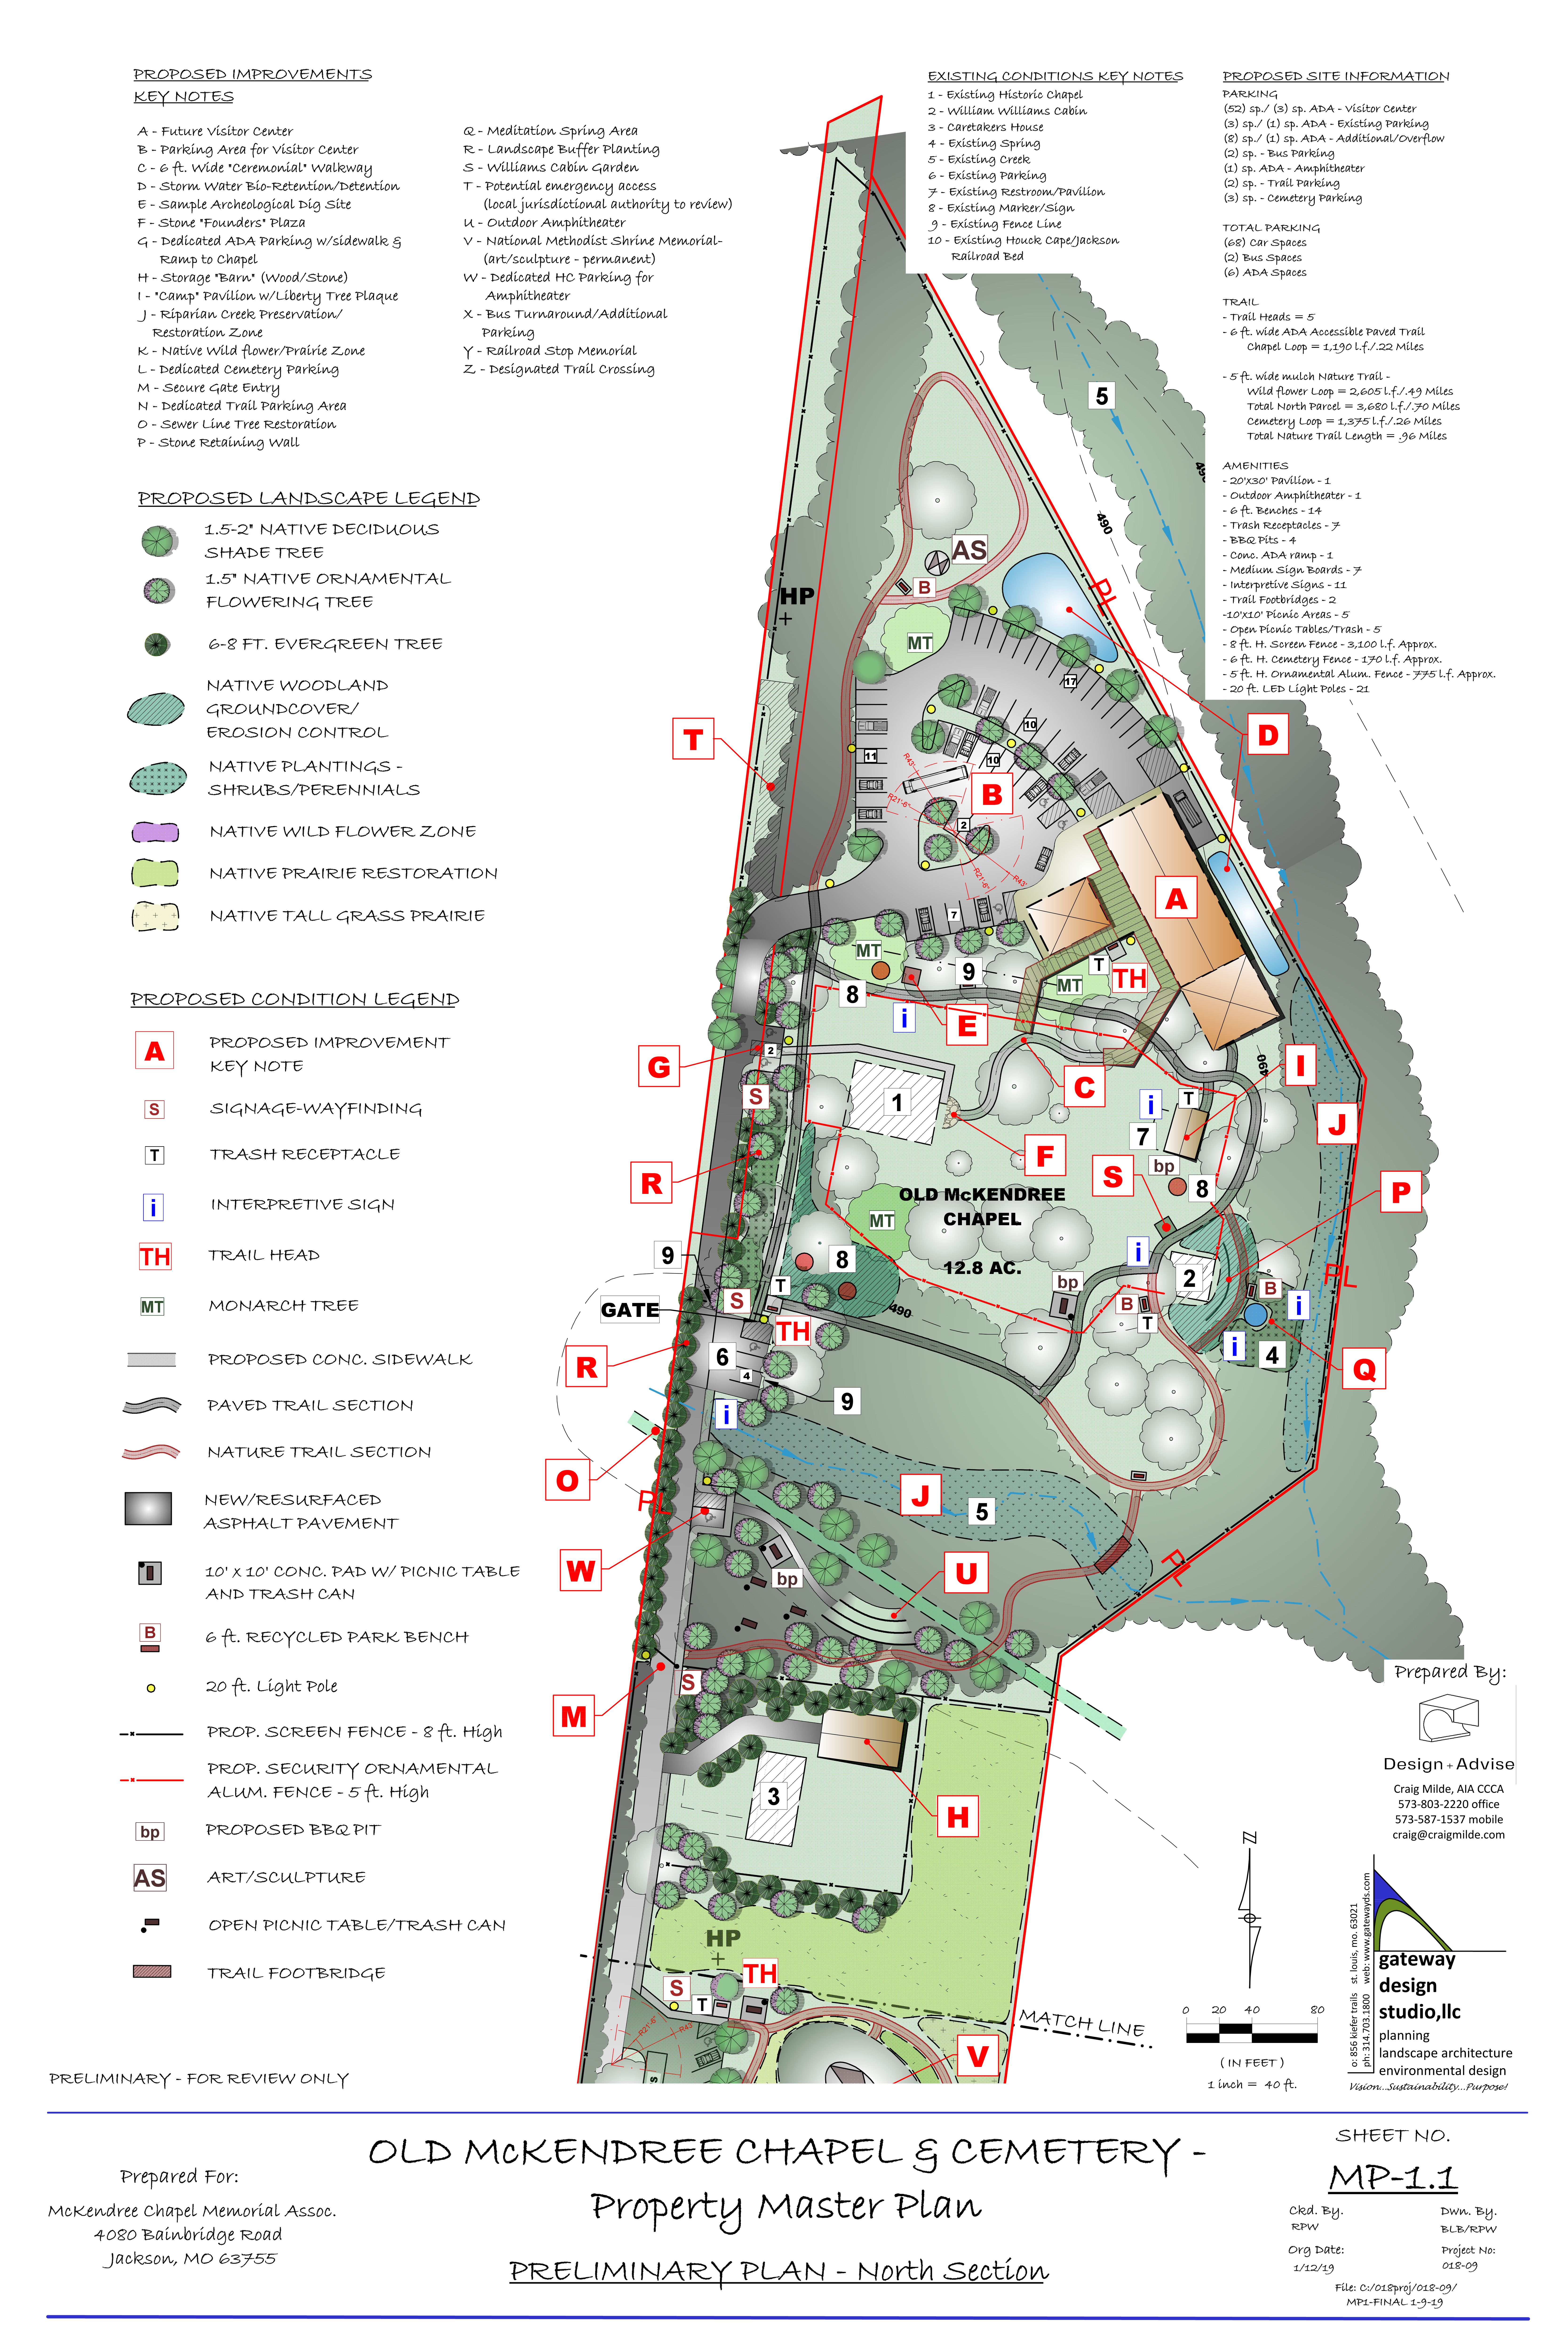 Master Plan - North Section